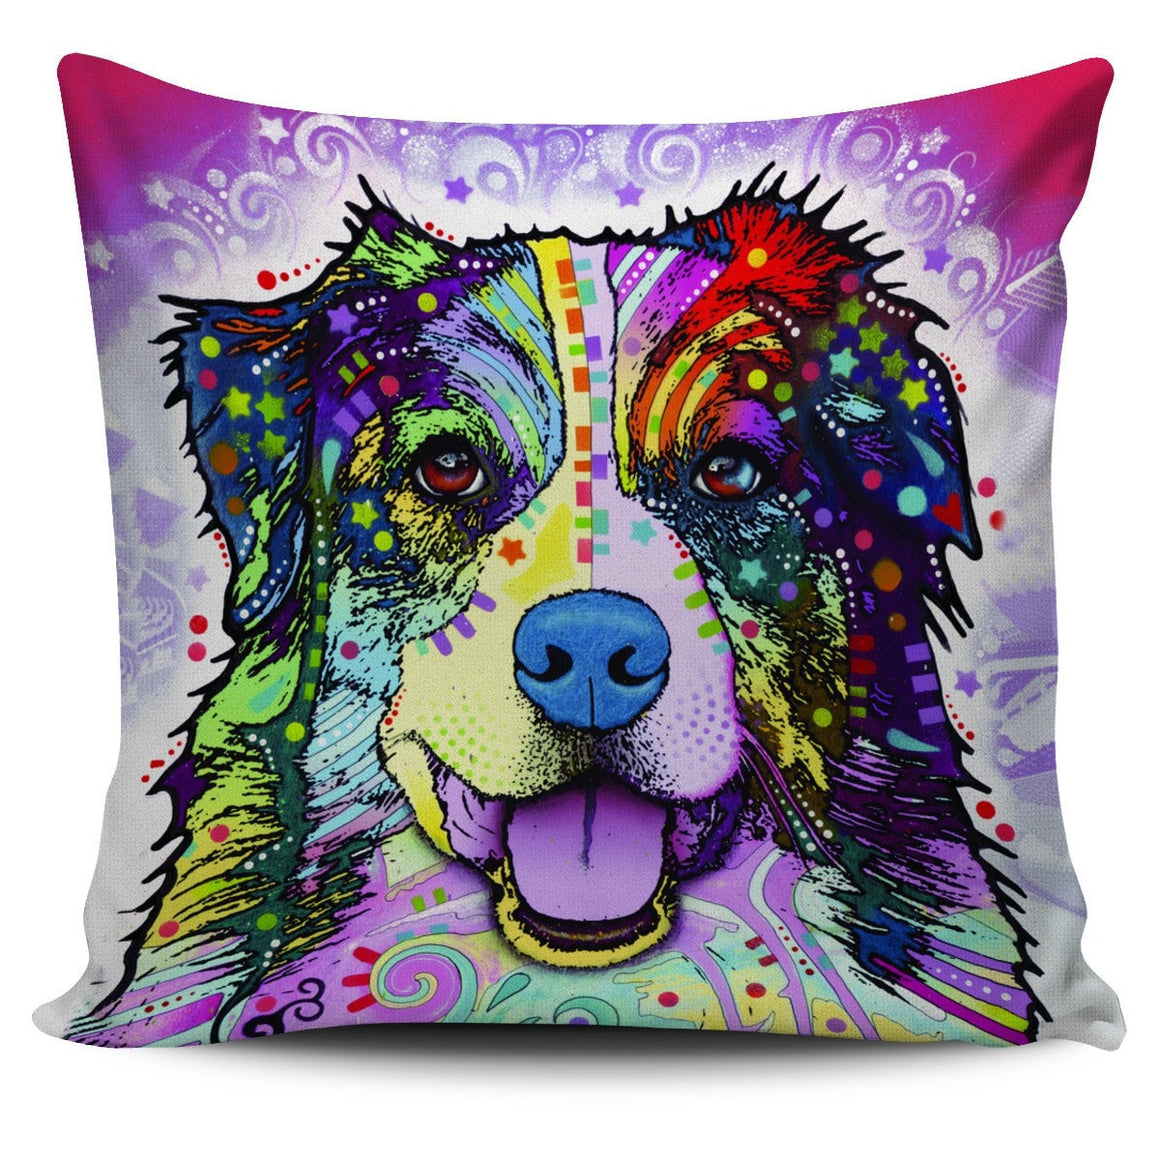 Australian Shepherd Pillow Cover